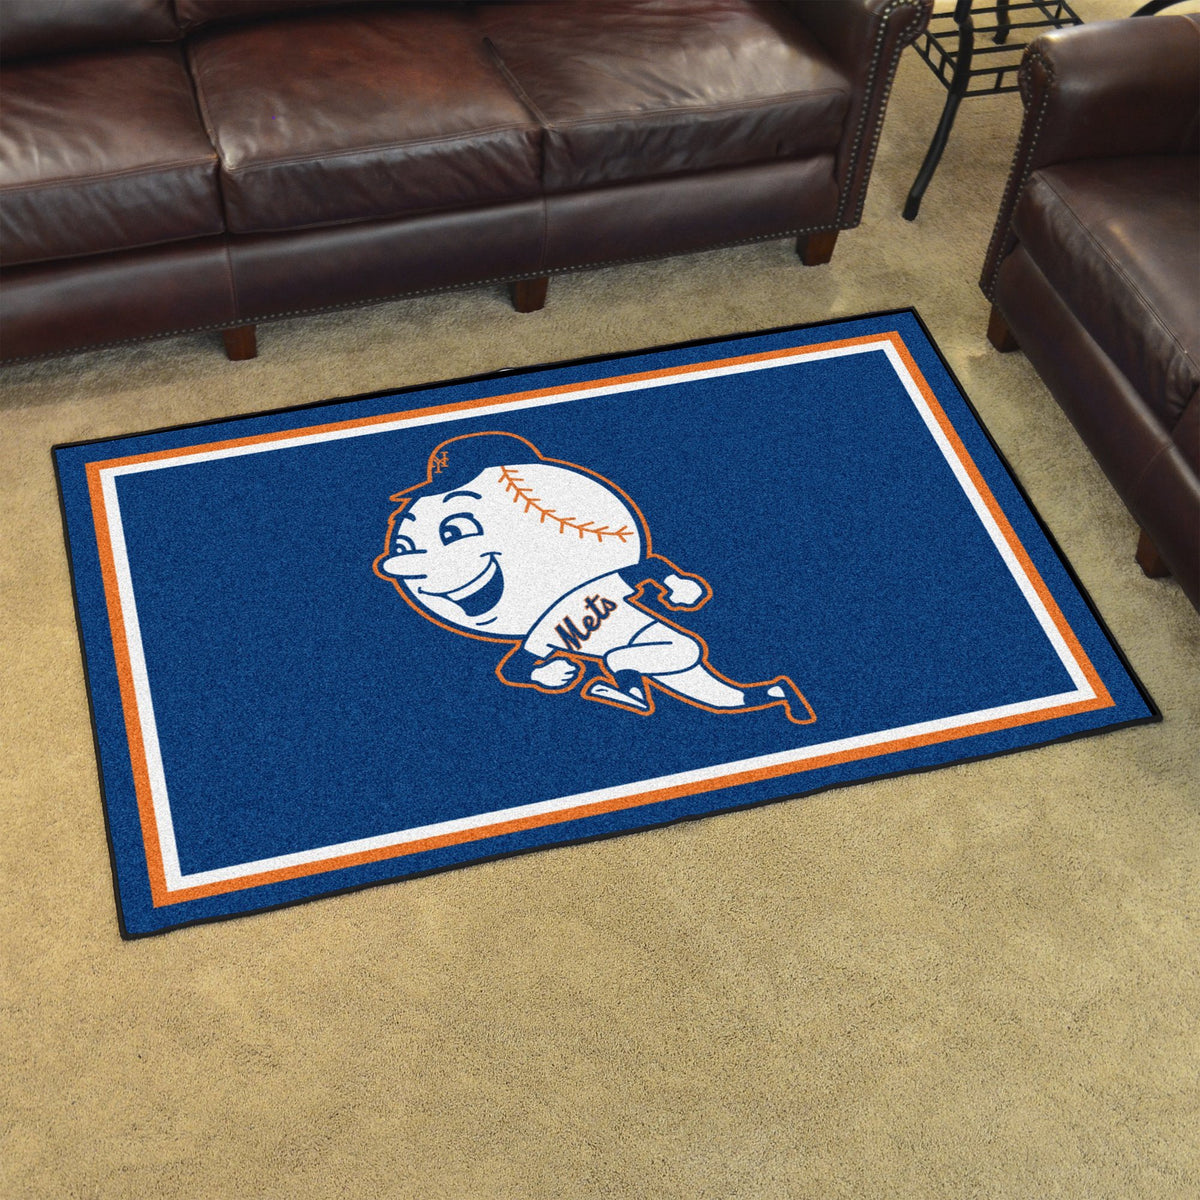 MLB Retro - 4' x 6' Rug MLB Retro Mats, Plush Rugs, 4x6 Rug, MLB, Home Fan Mats New York Mets